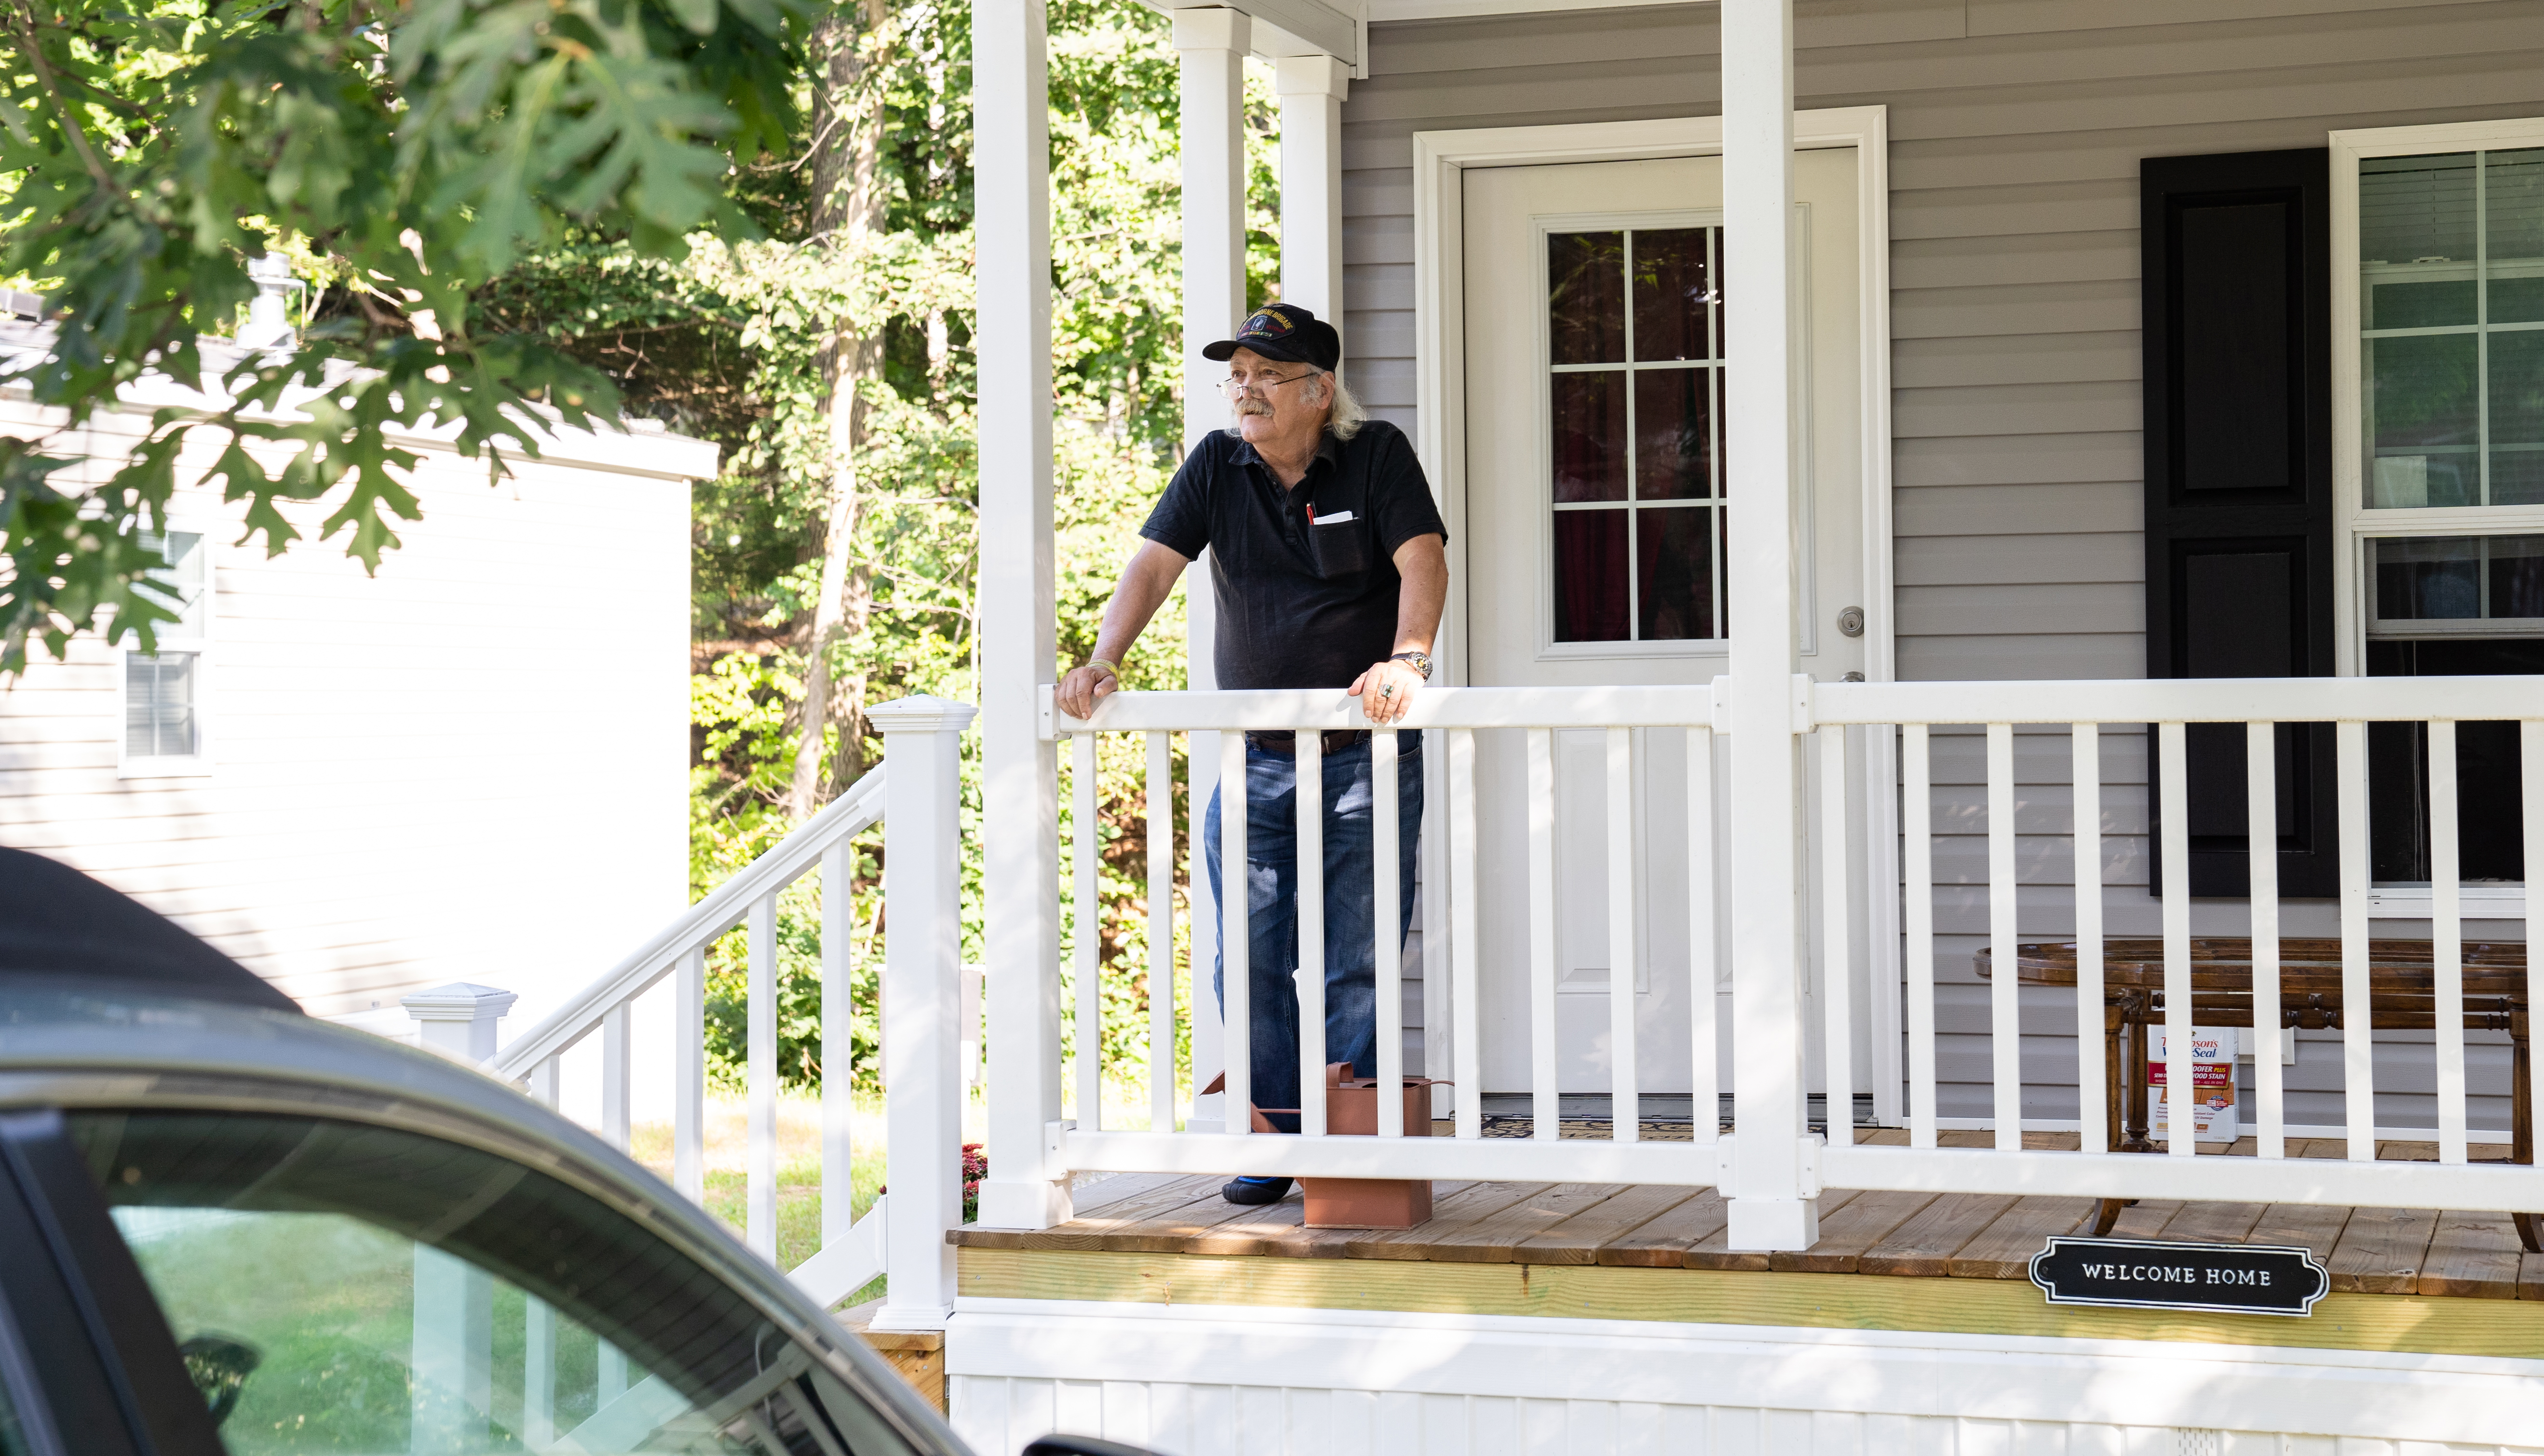 veteran stands on porch